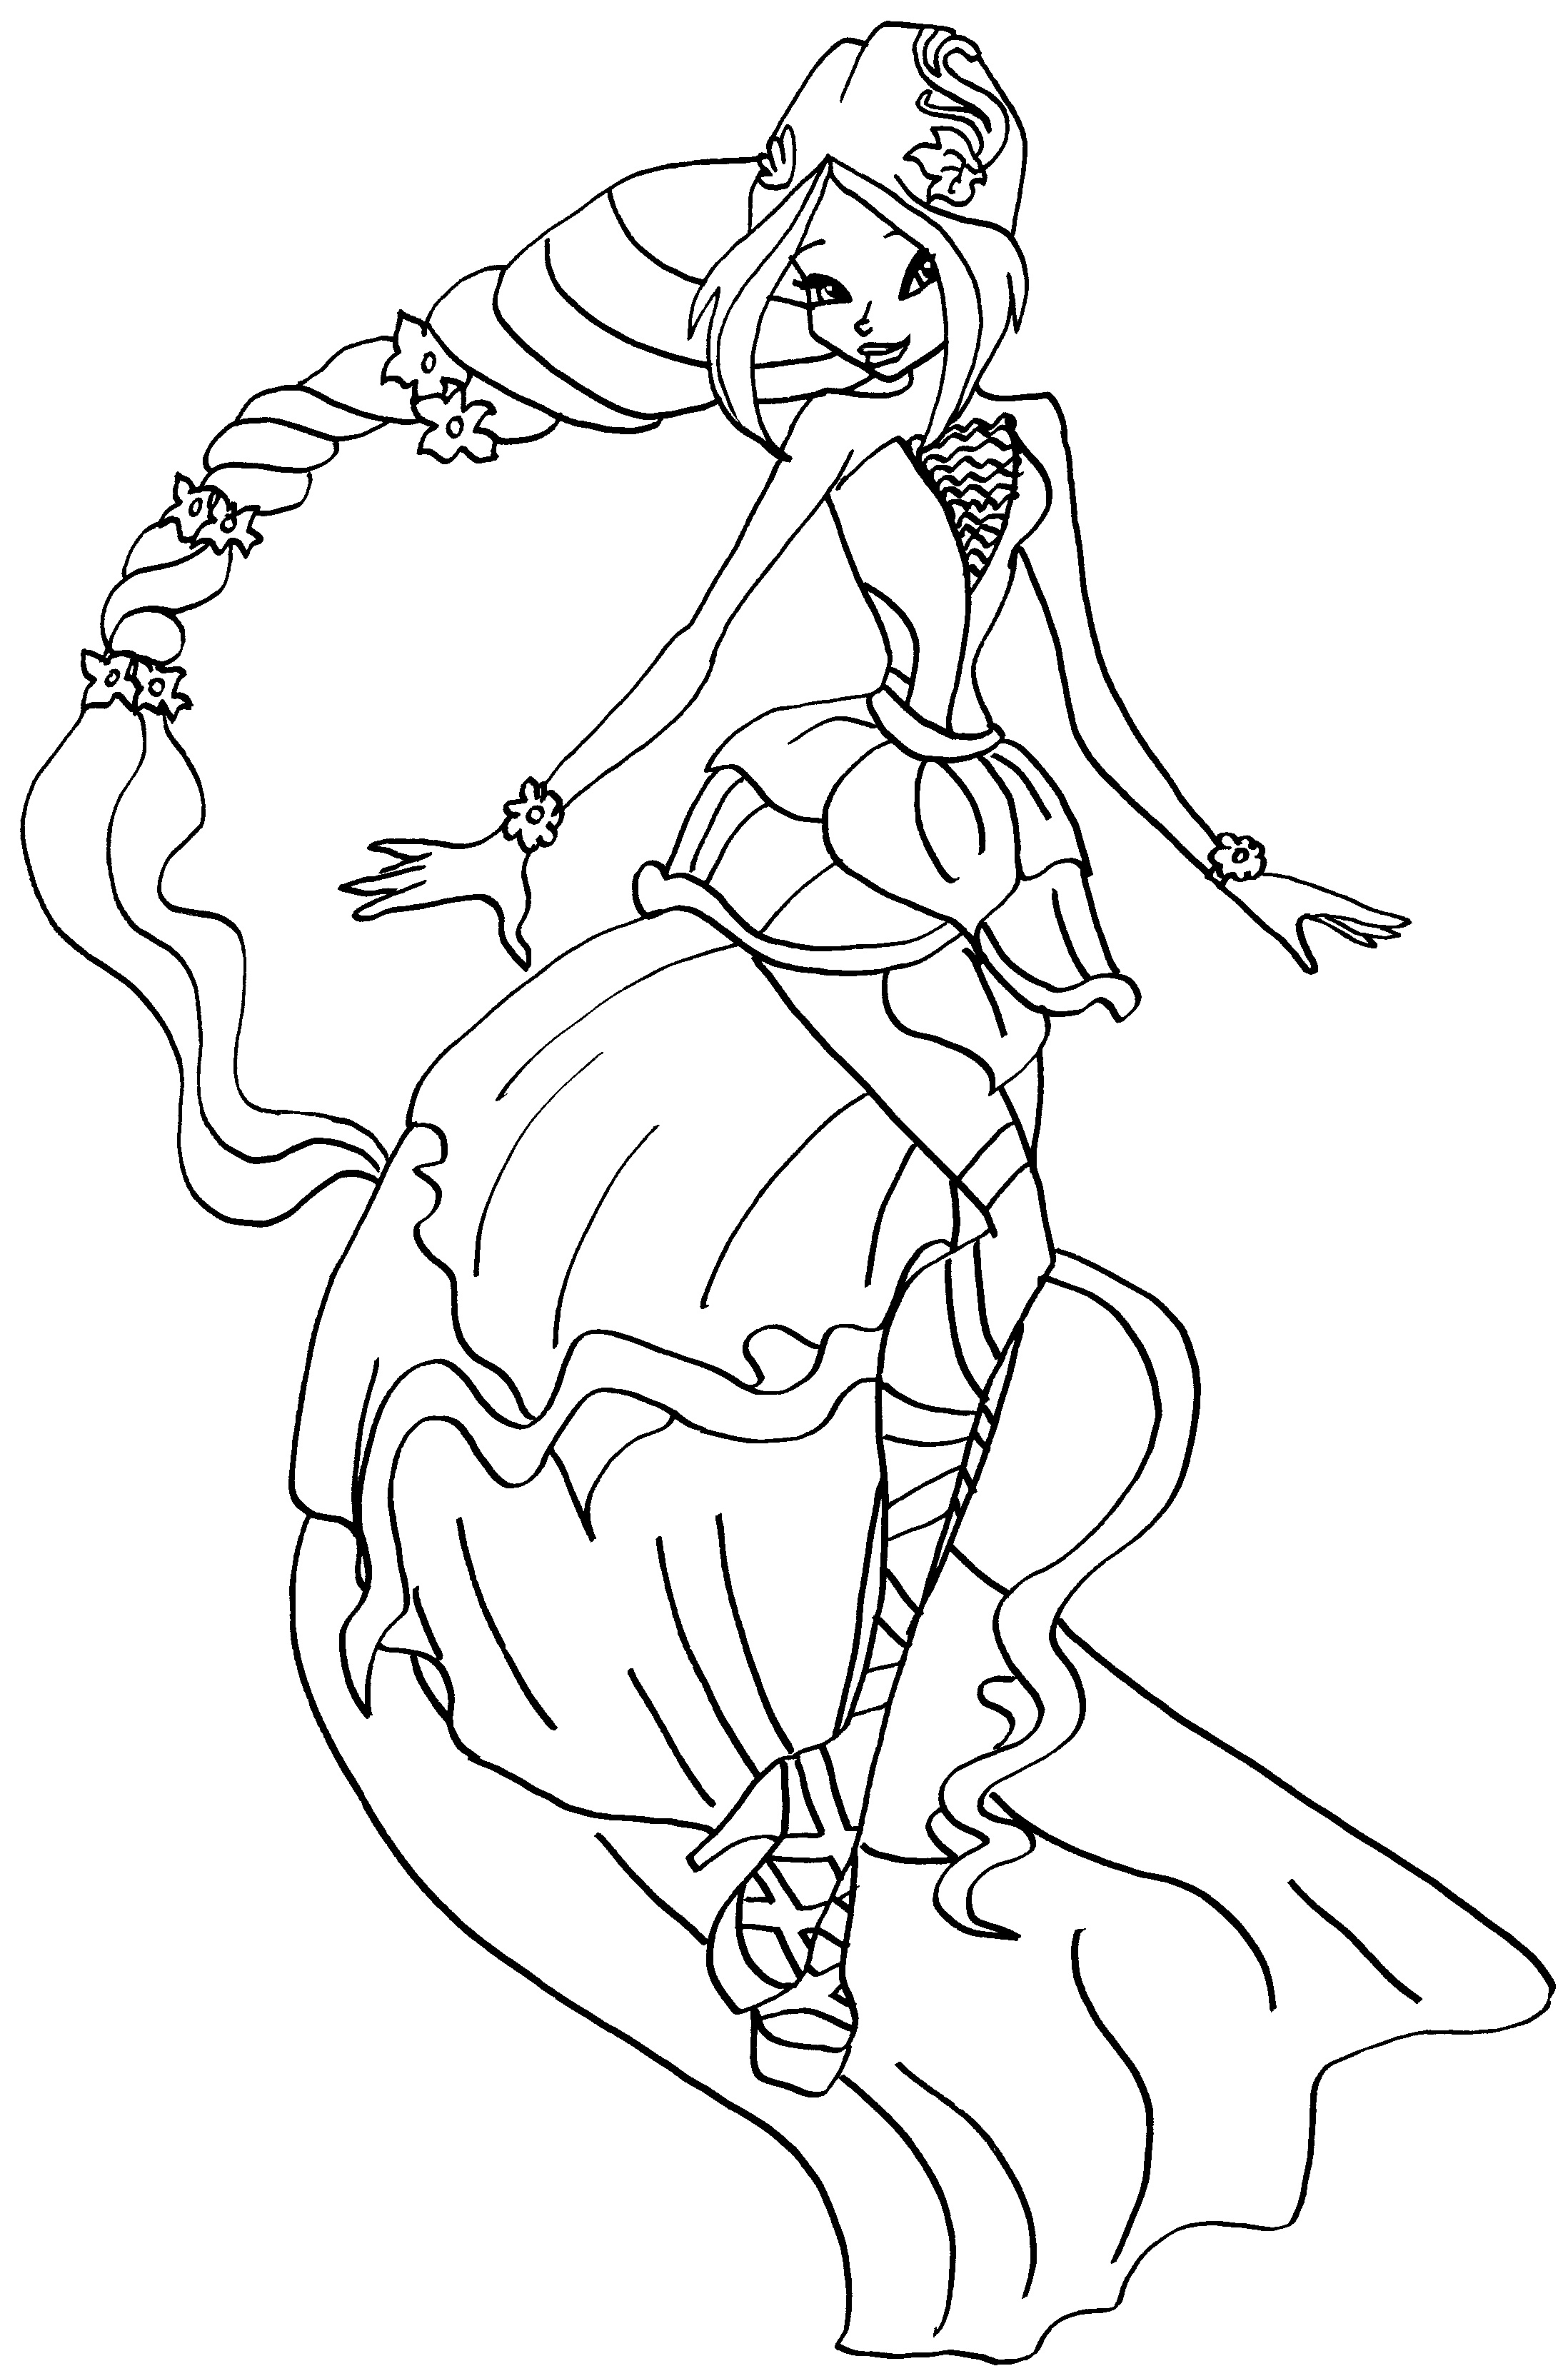 Winx Princess coloring pages download and print for free